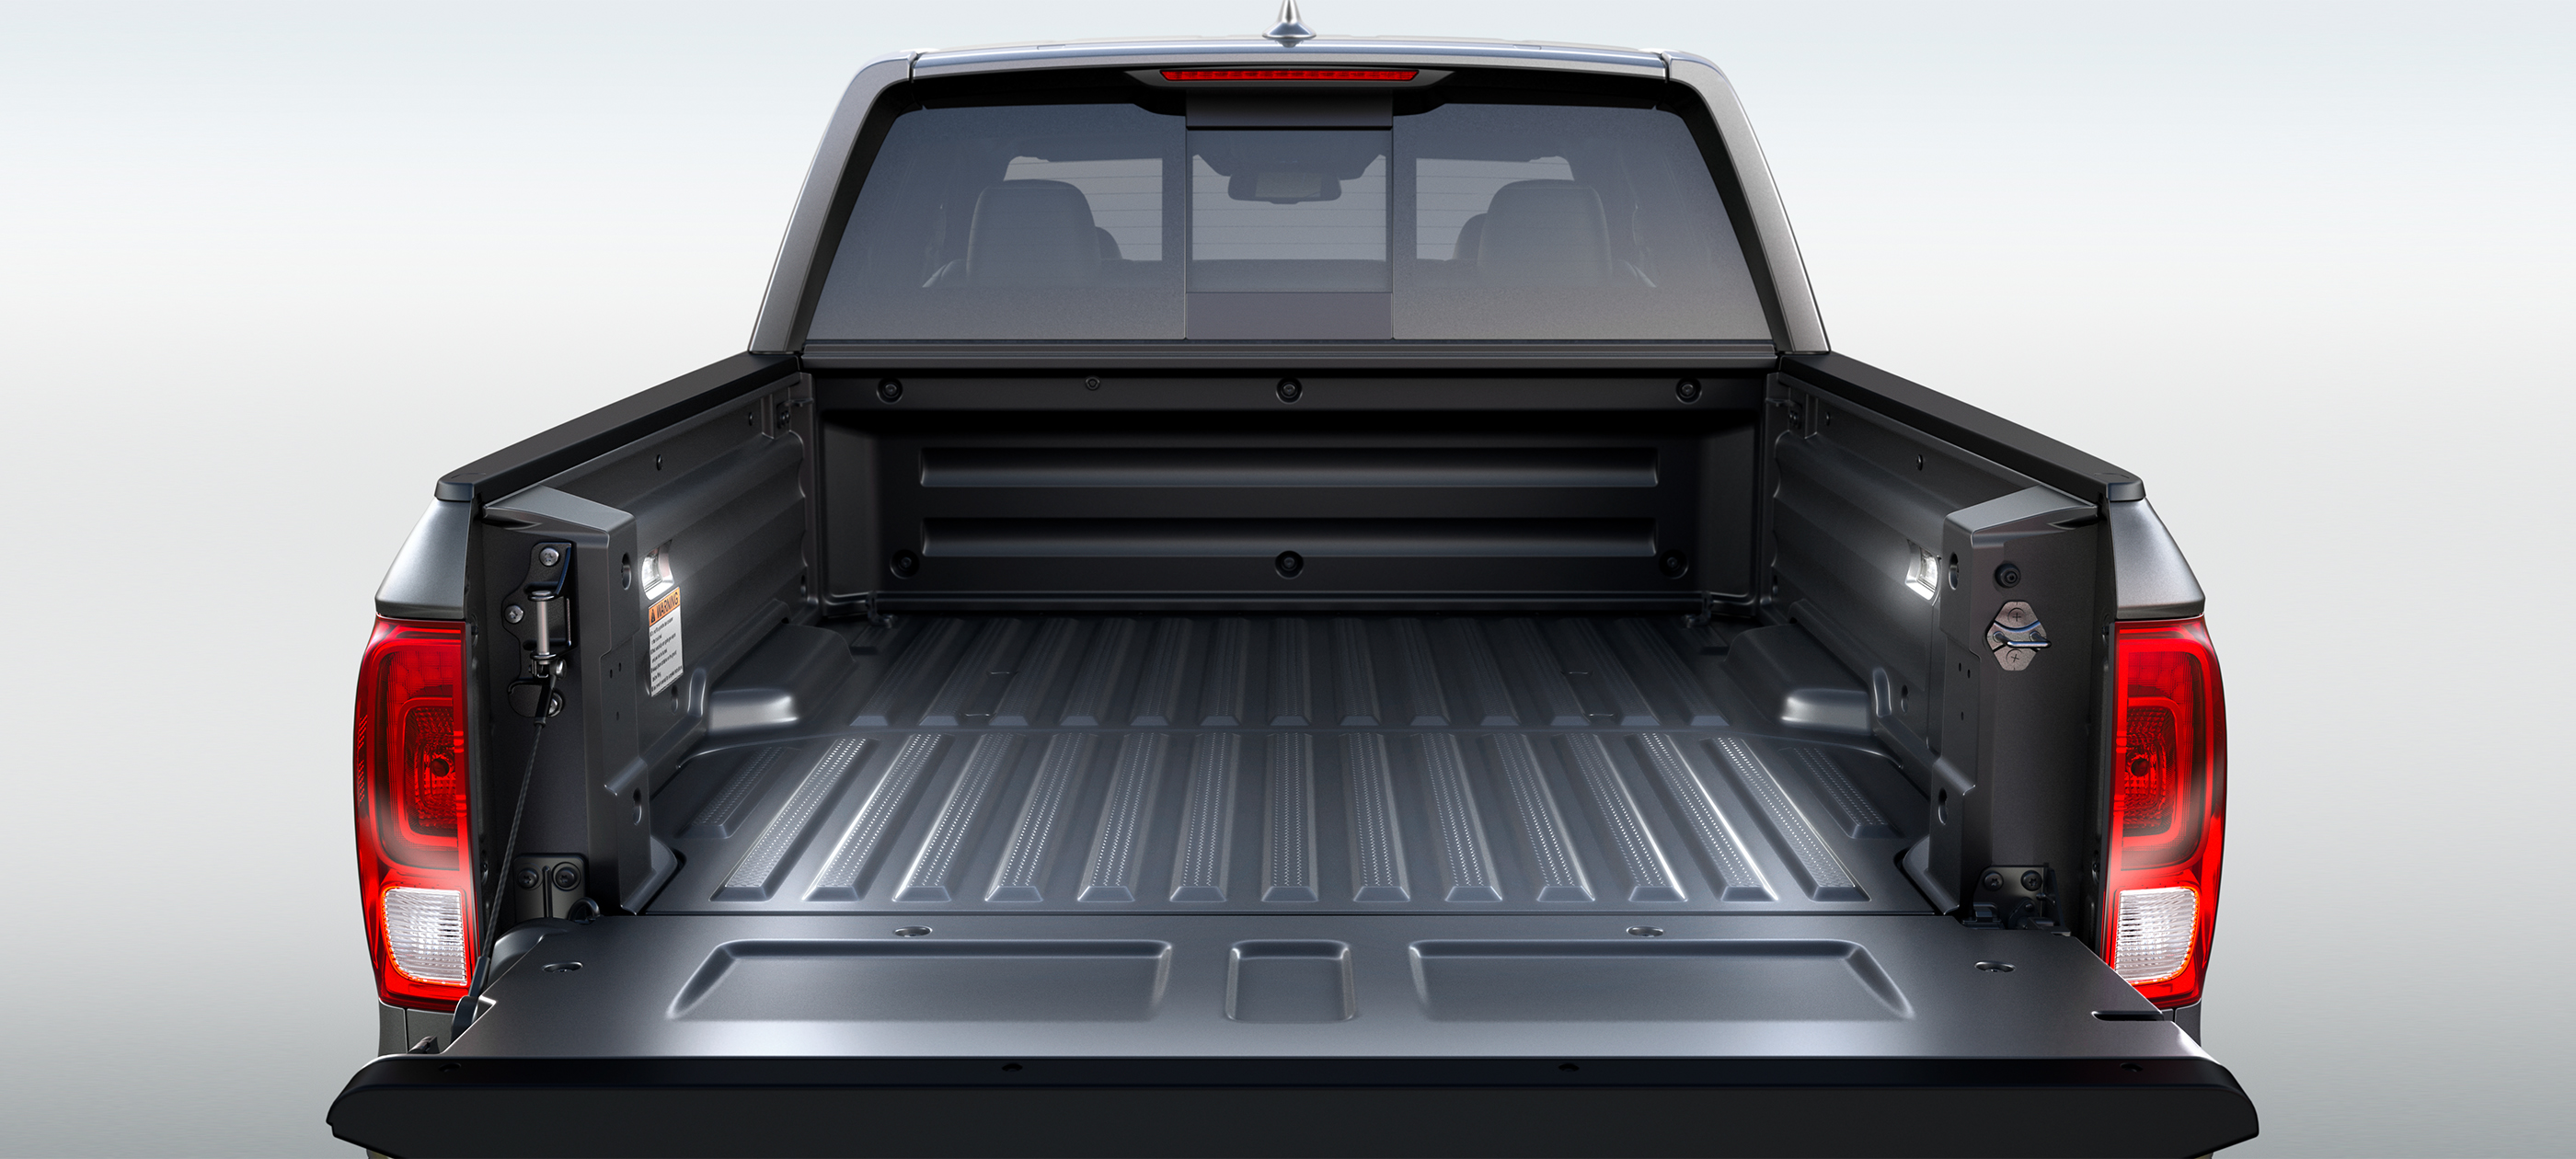 In bed lighting detail on 2019 Honda Ridgeline RTL-E in Modern Steel Metallic.